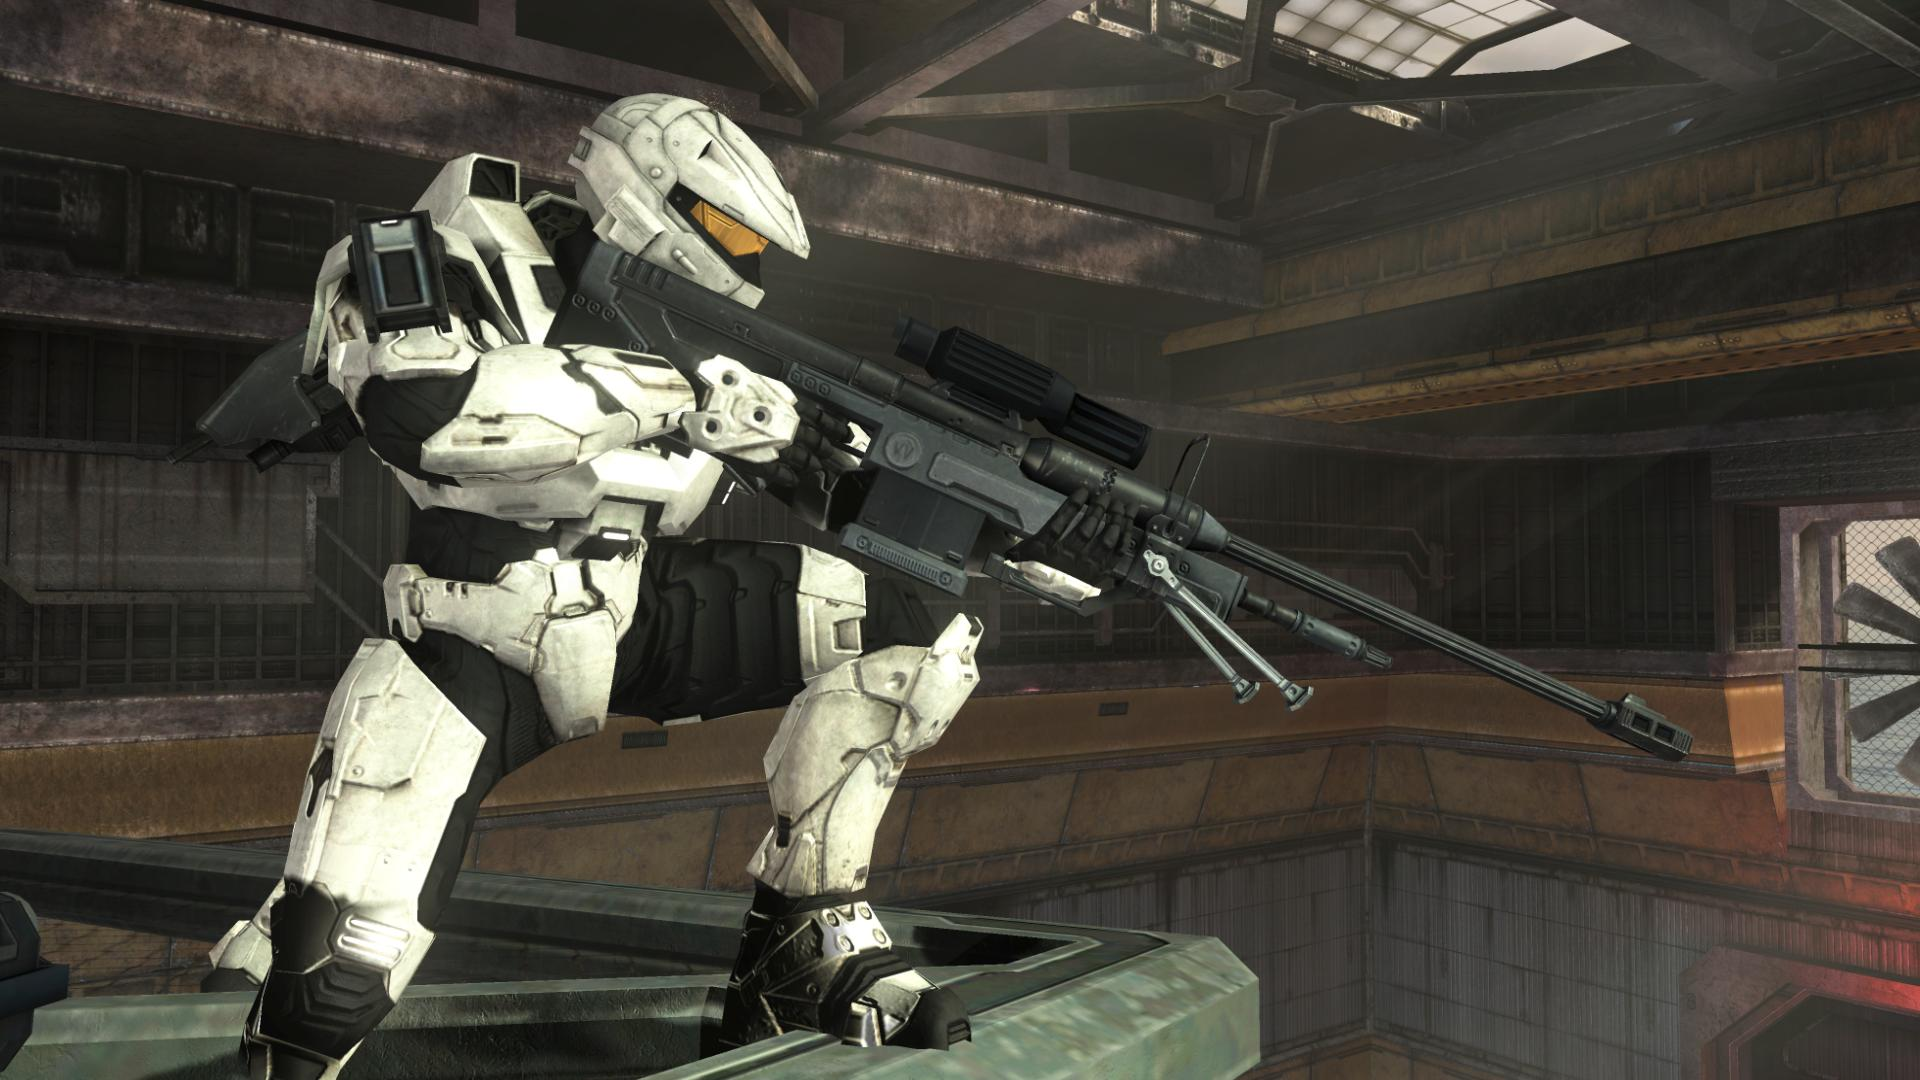 Halo sniper full hd wallpaper and background image 1920x1080 video game halo game wallpaper voltagebd Choice Image